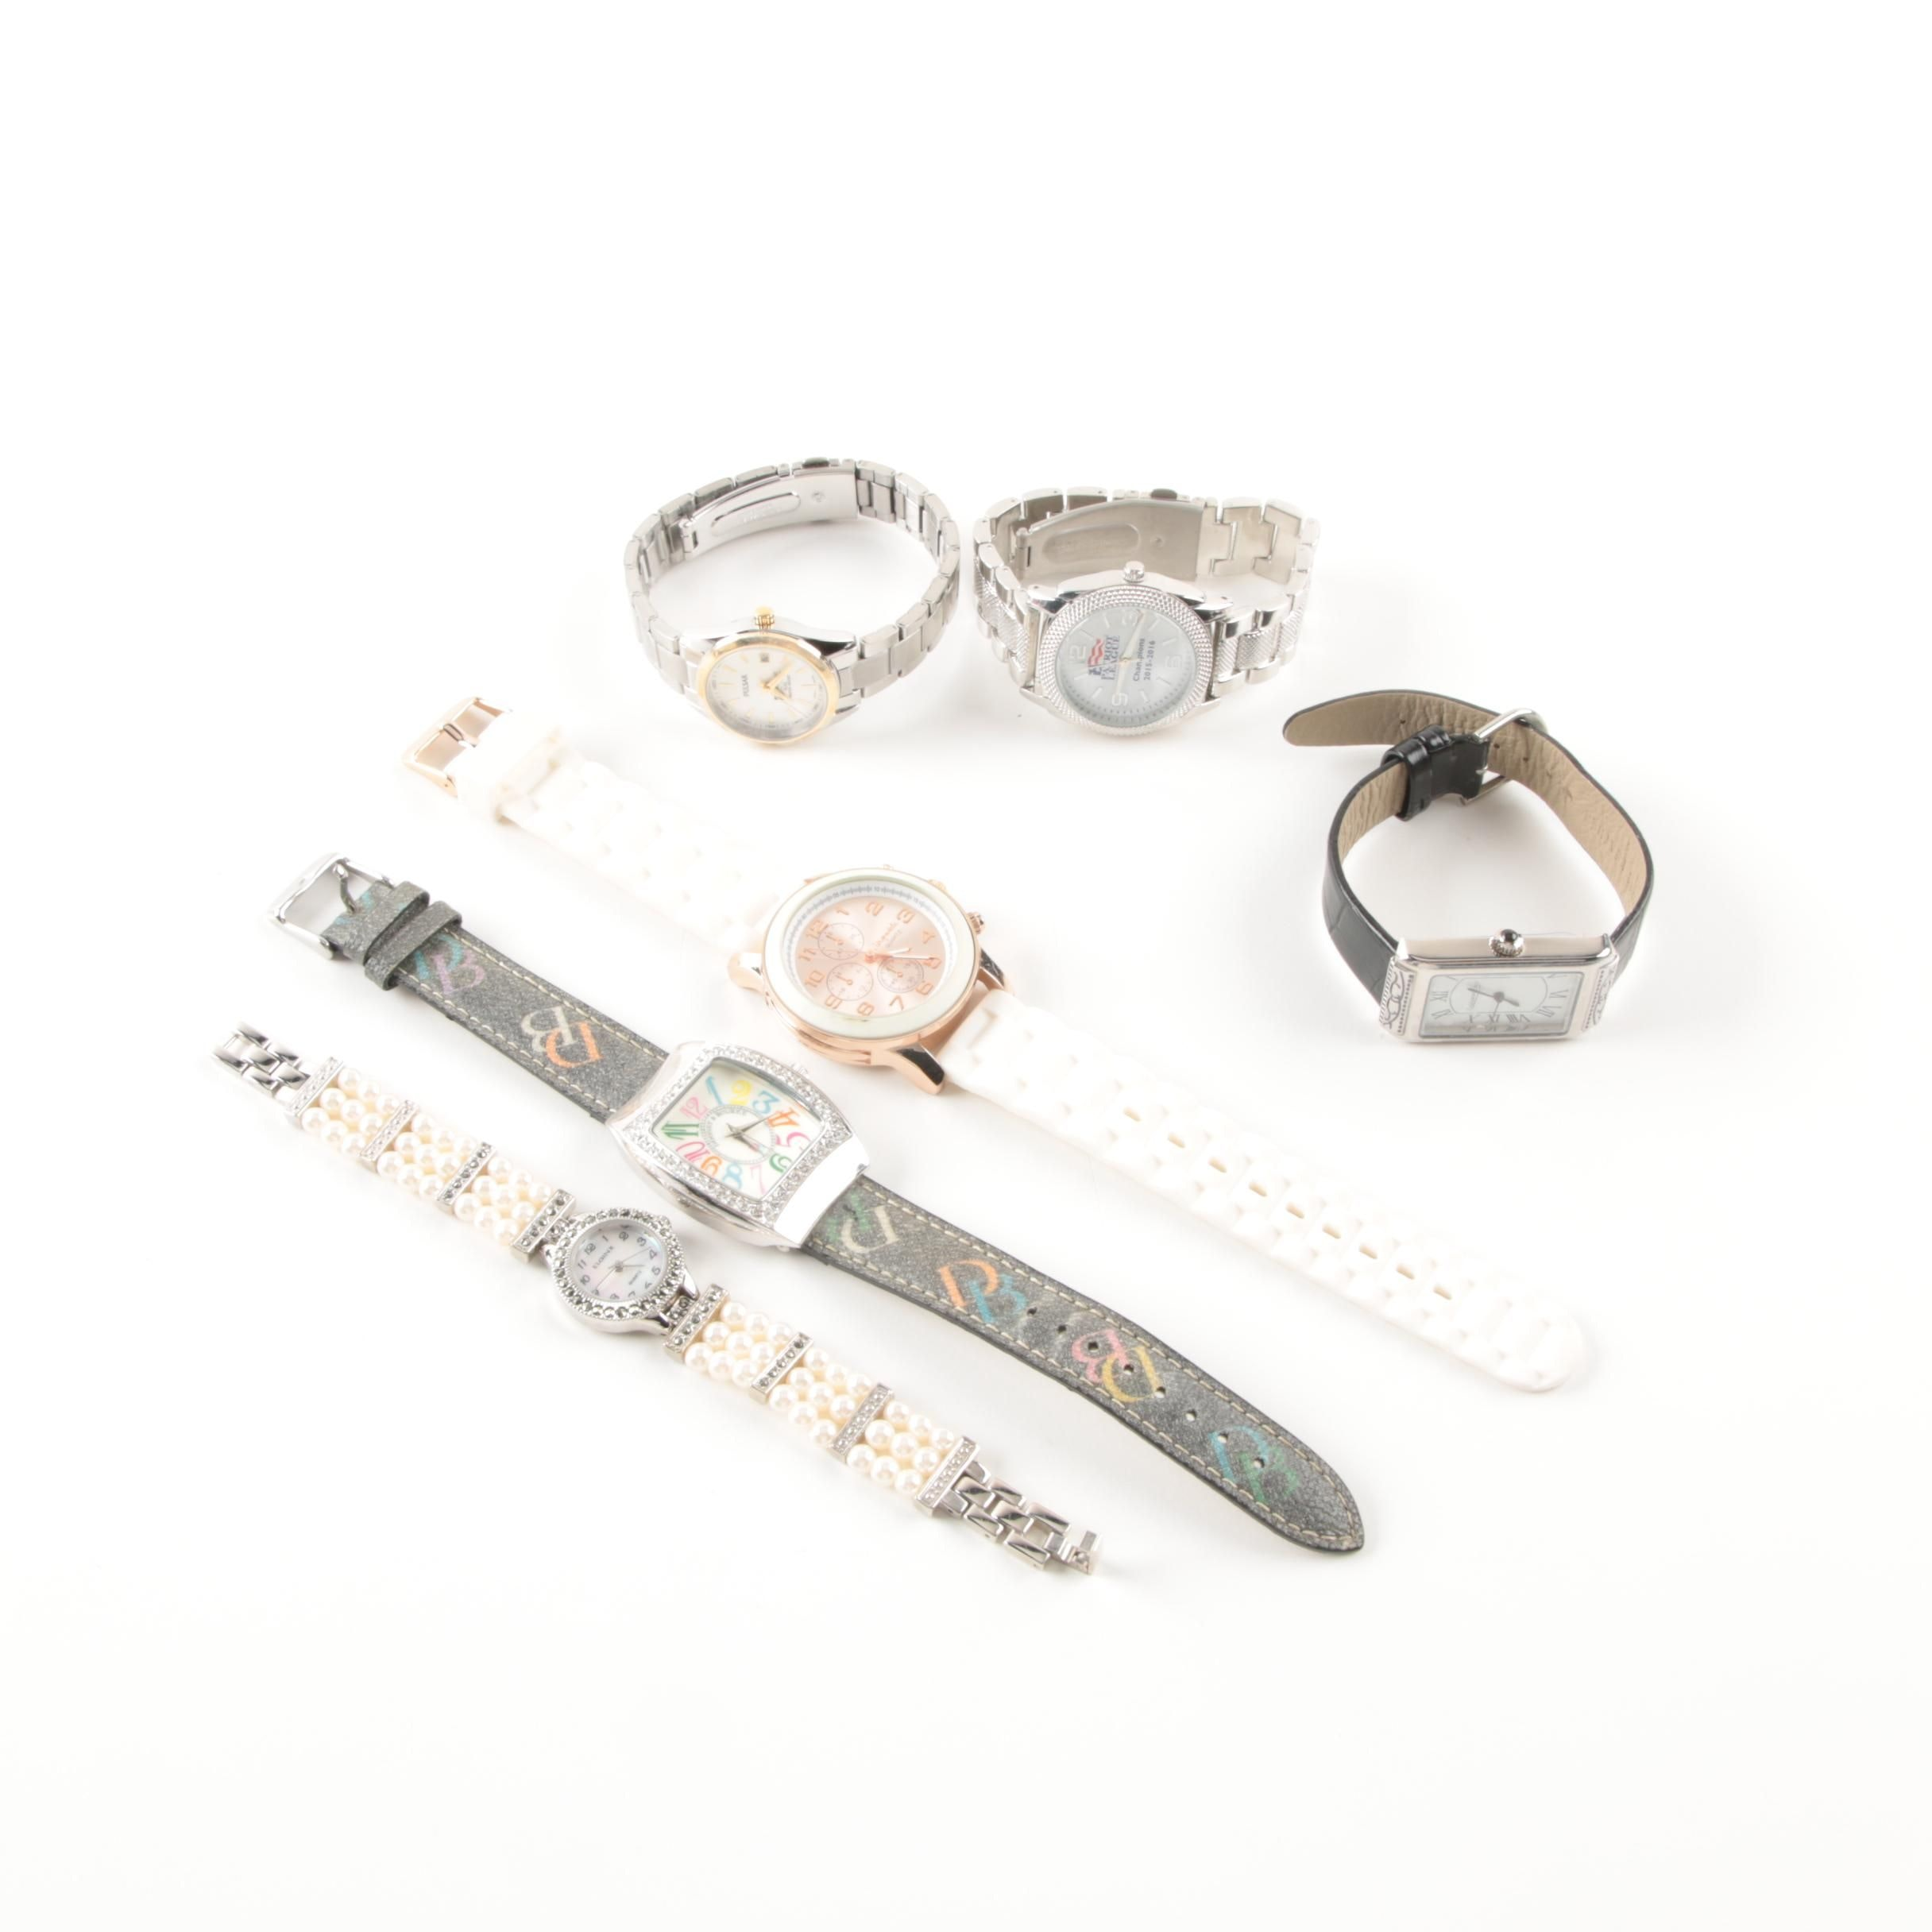 Assortment of Wristwatches Featuring Dooney & Bourke with Imitation Pearls